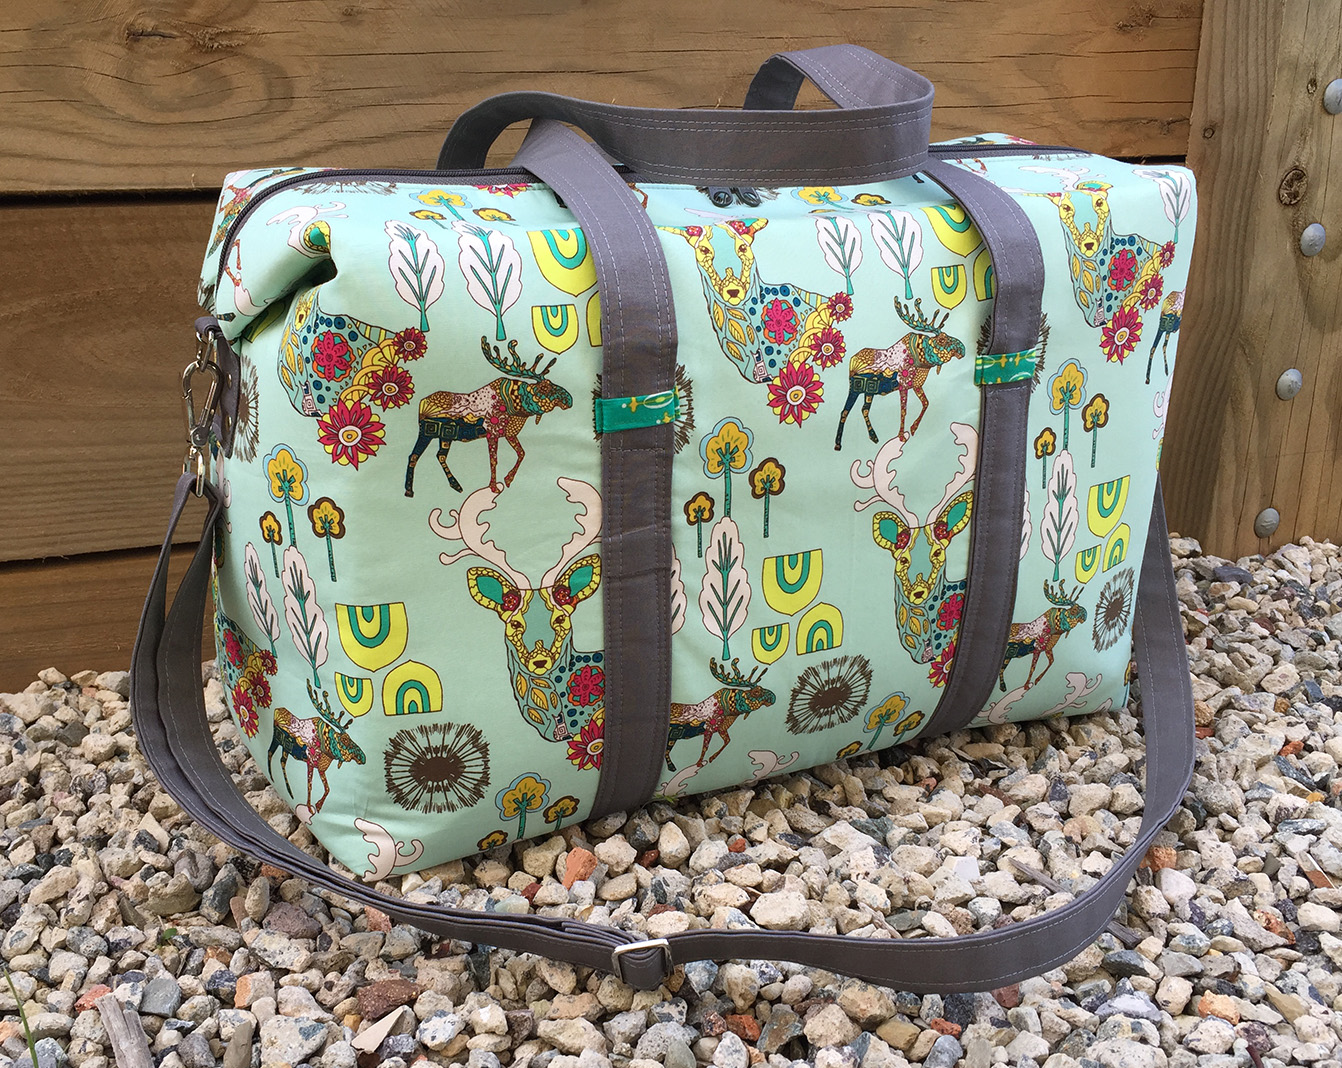 Sew Sweetness Emblem Duffle Bag sewing pattern, sewn by Melisa Jane Handmade